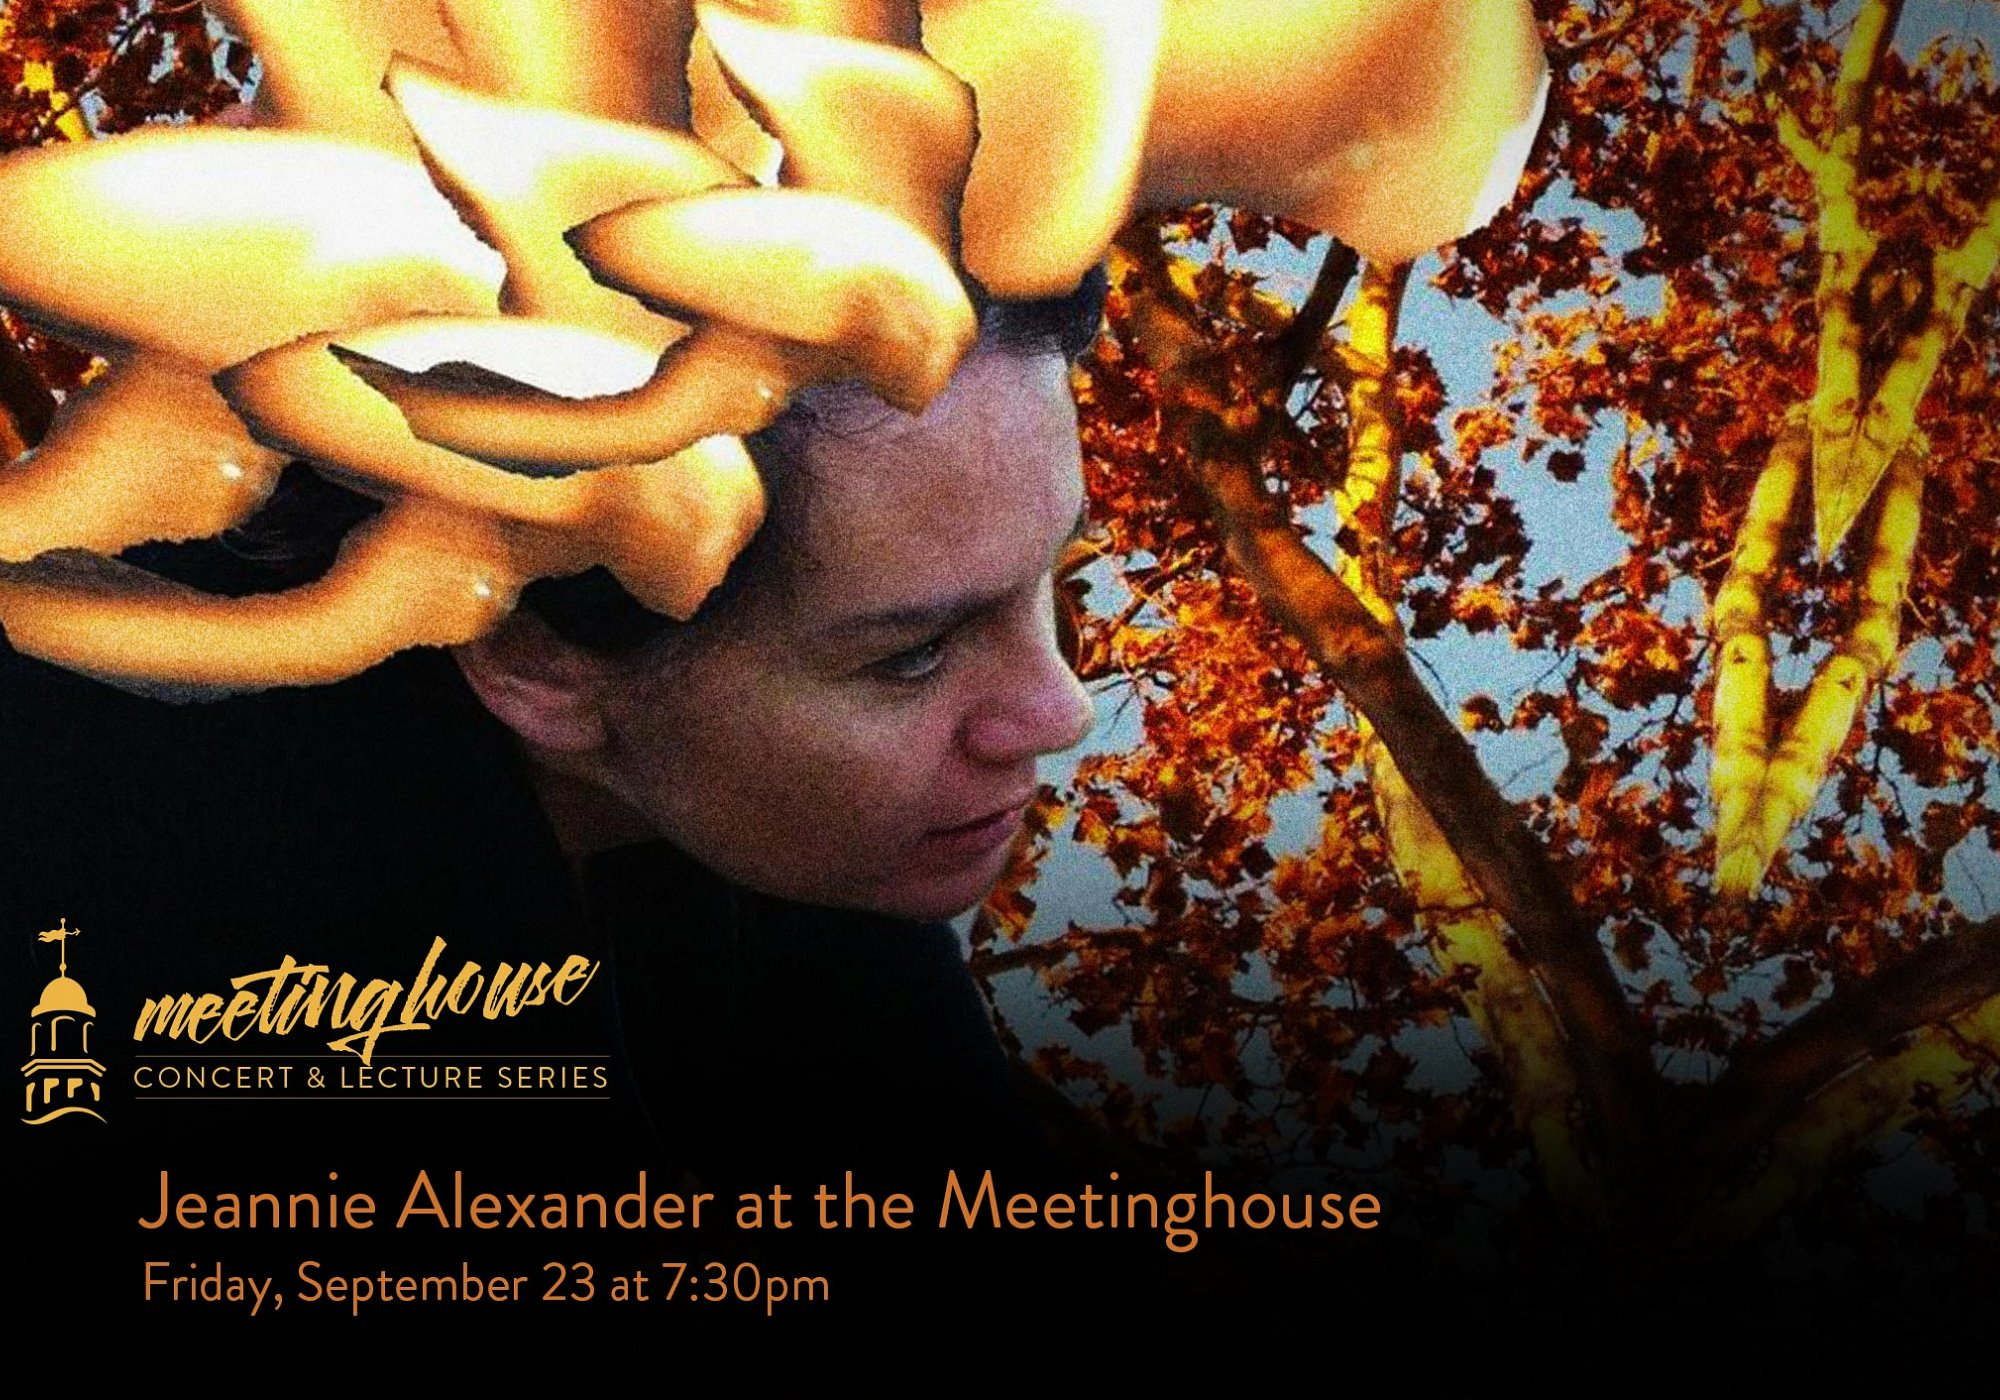 Jeannie Alexander at the Meetinghouse